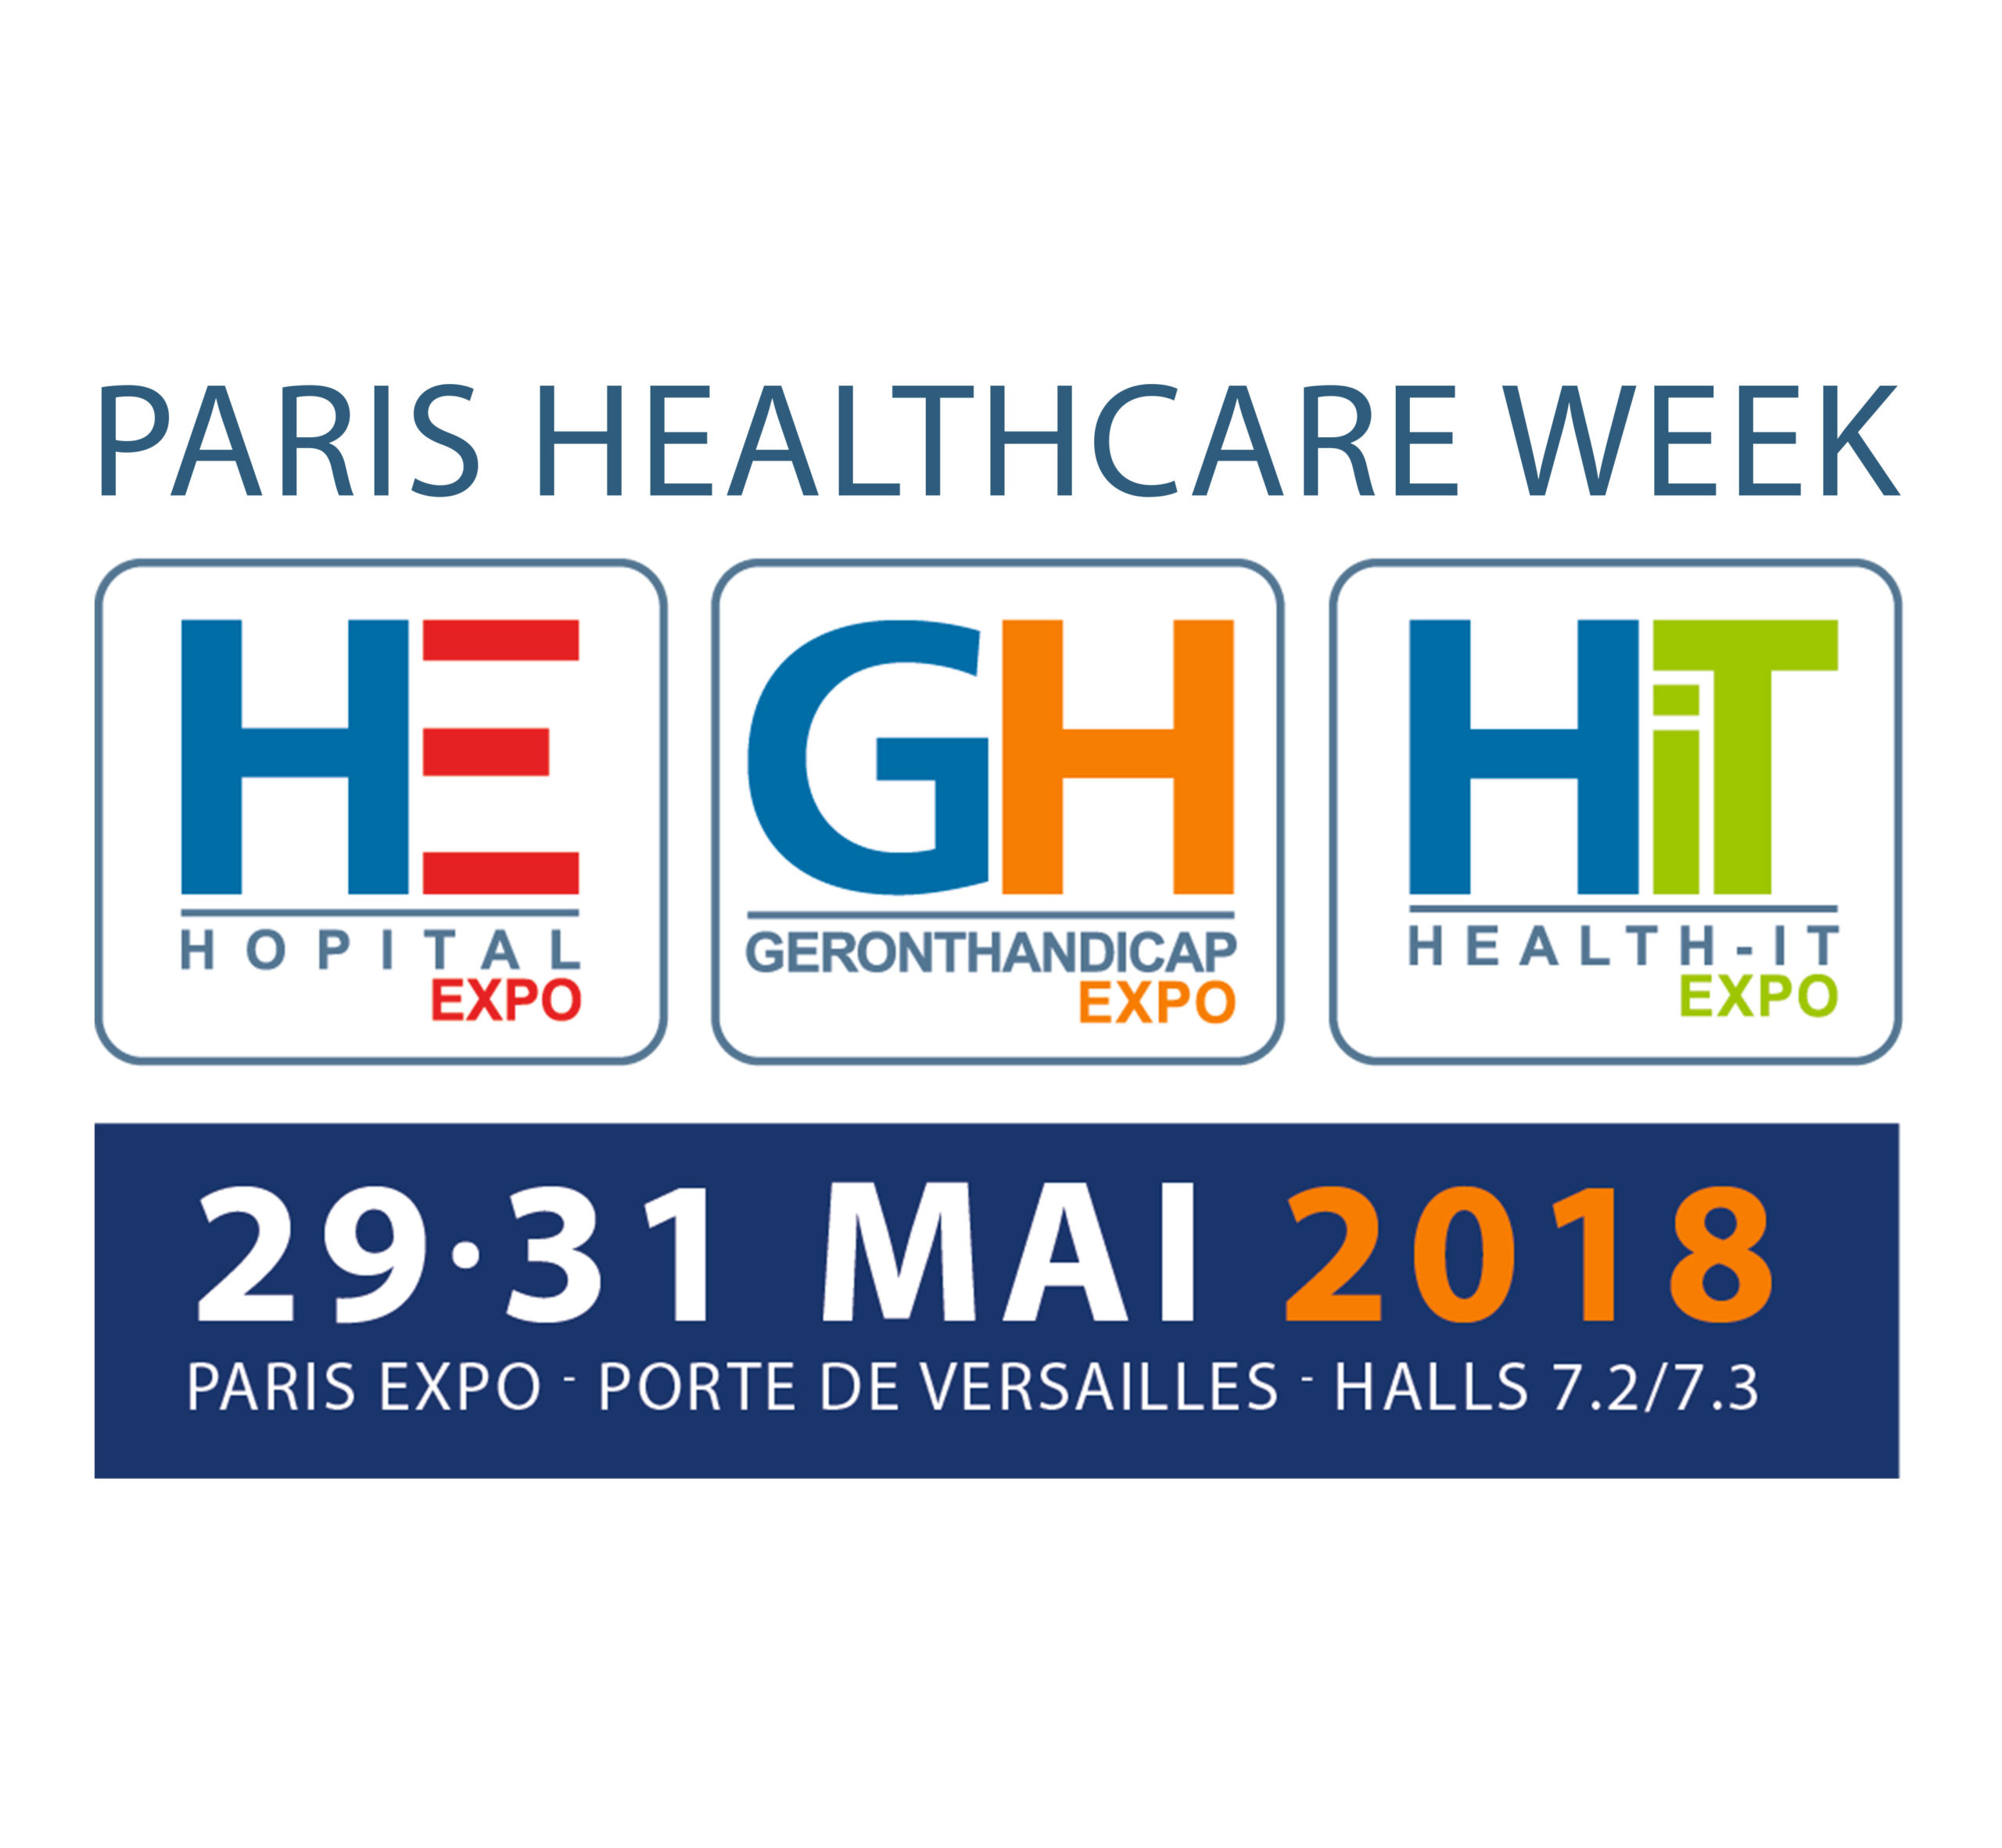 Paris Healthcare Week 2018 - Mercura Industries